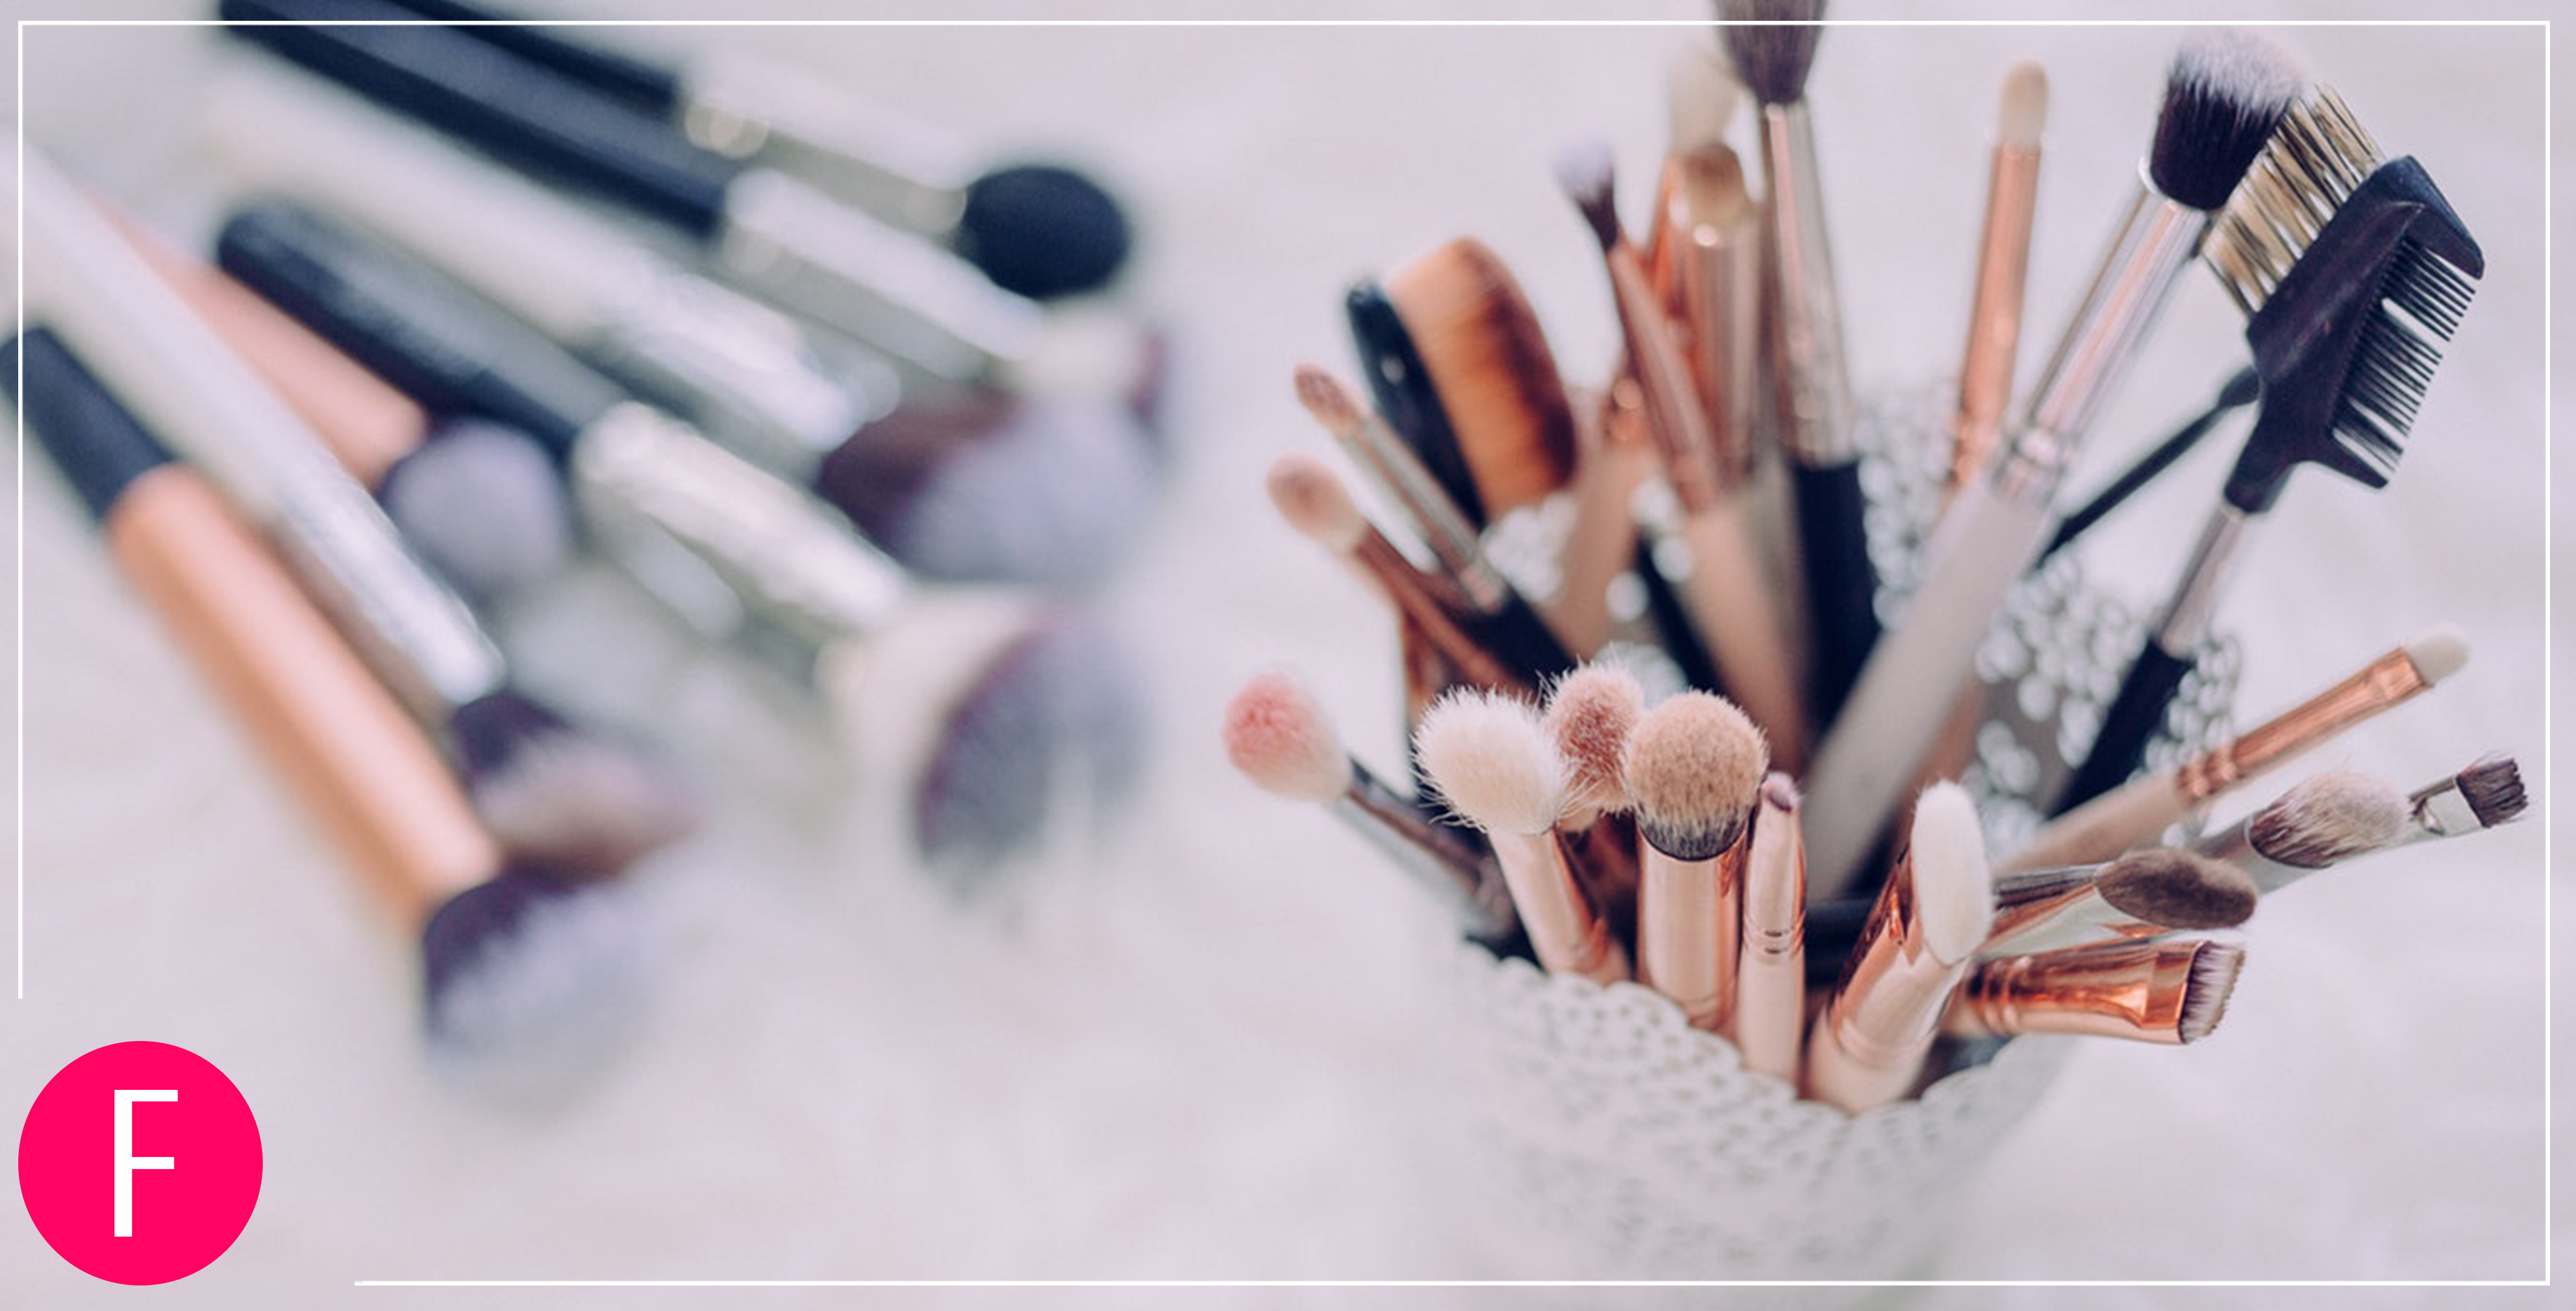 clean makeup brushes, makeup brushes